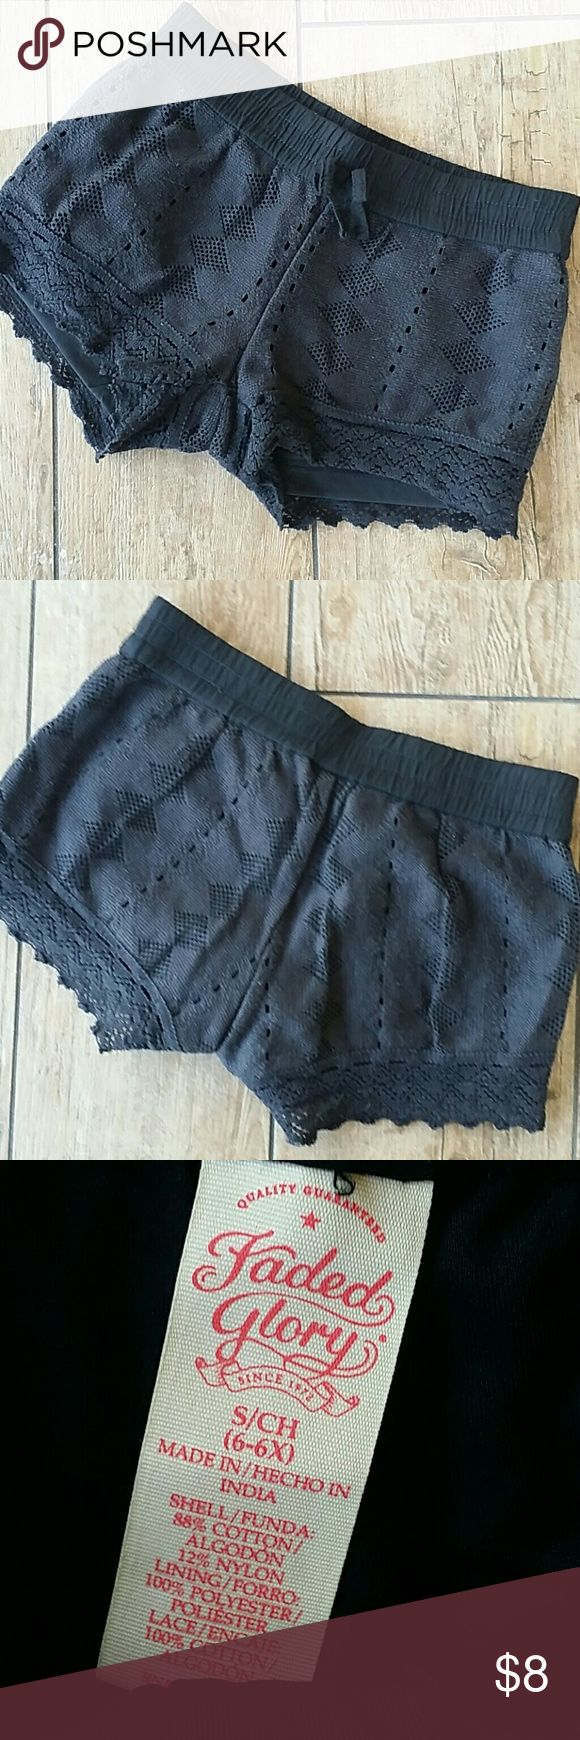 BLACK CROCHET SHORTS Girls black crochet shorts Lined with black short Elastic waist  Non working drawstring No rips, stains, pilling or fading Smoke free home Bottoms Shorts